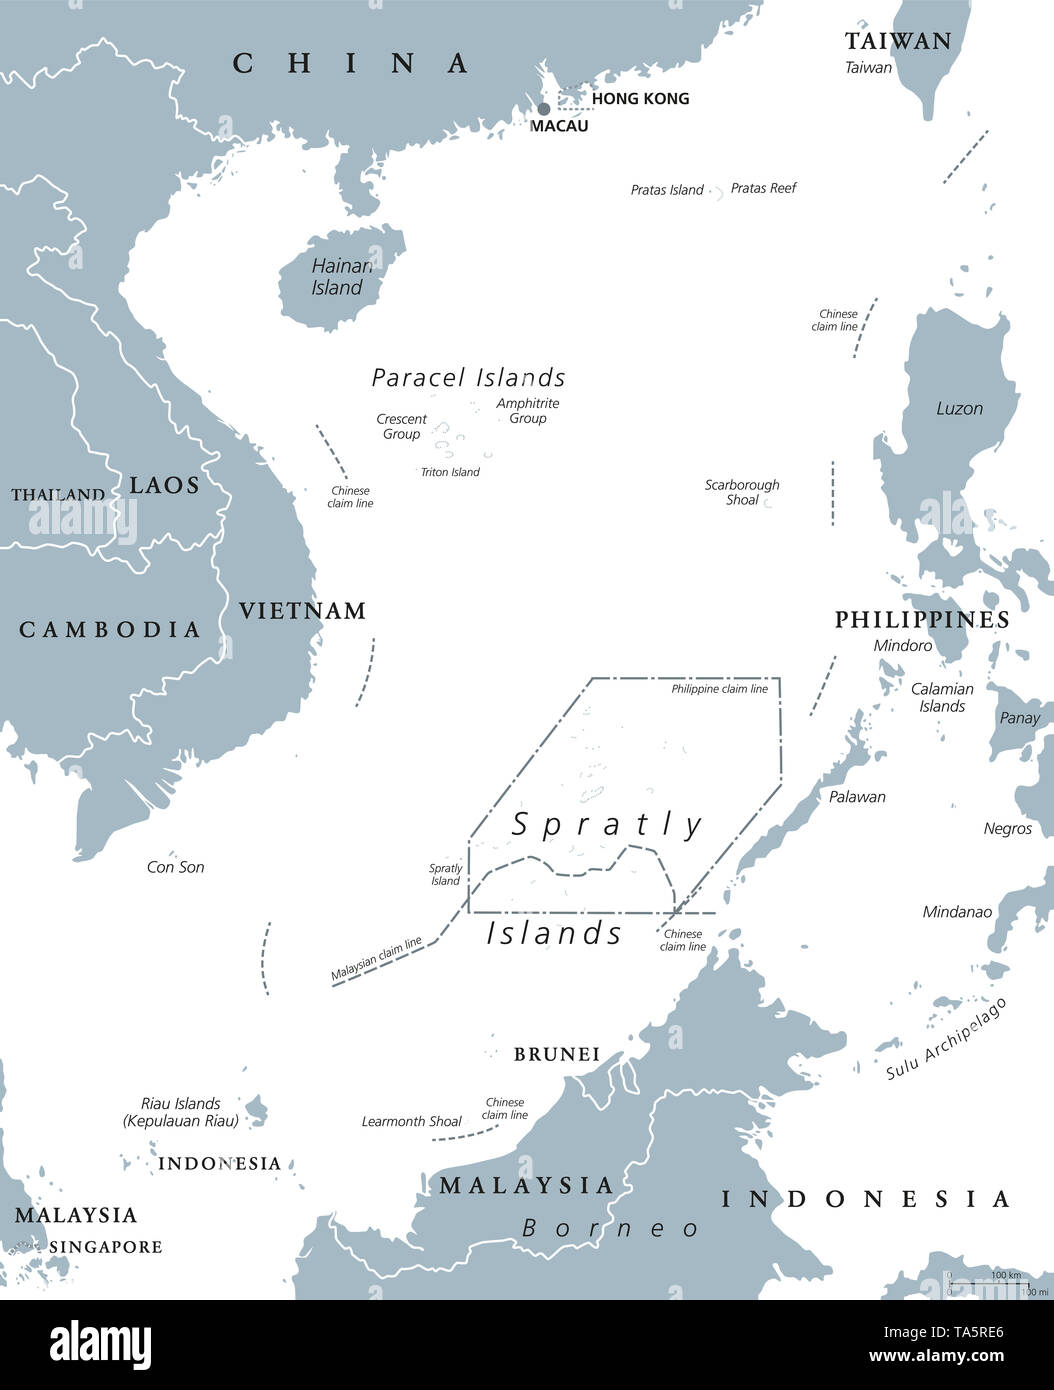 South China Sea Islands, political map. Paracel and Spratly Islands, atolls, cays and reefs. Partially claimed by China and other neighboring states. - Stock Image